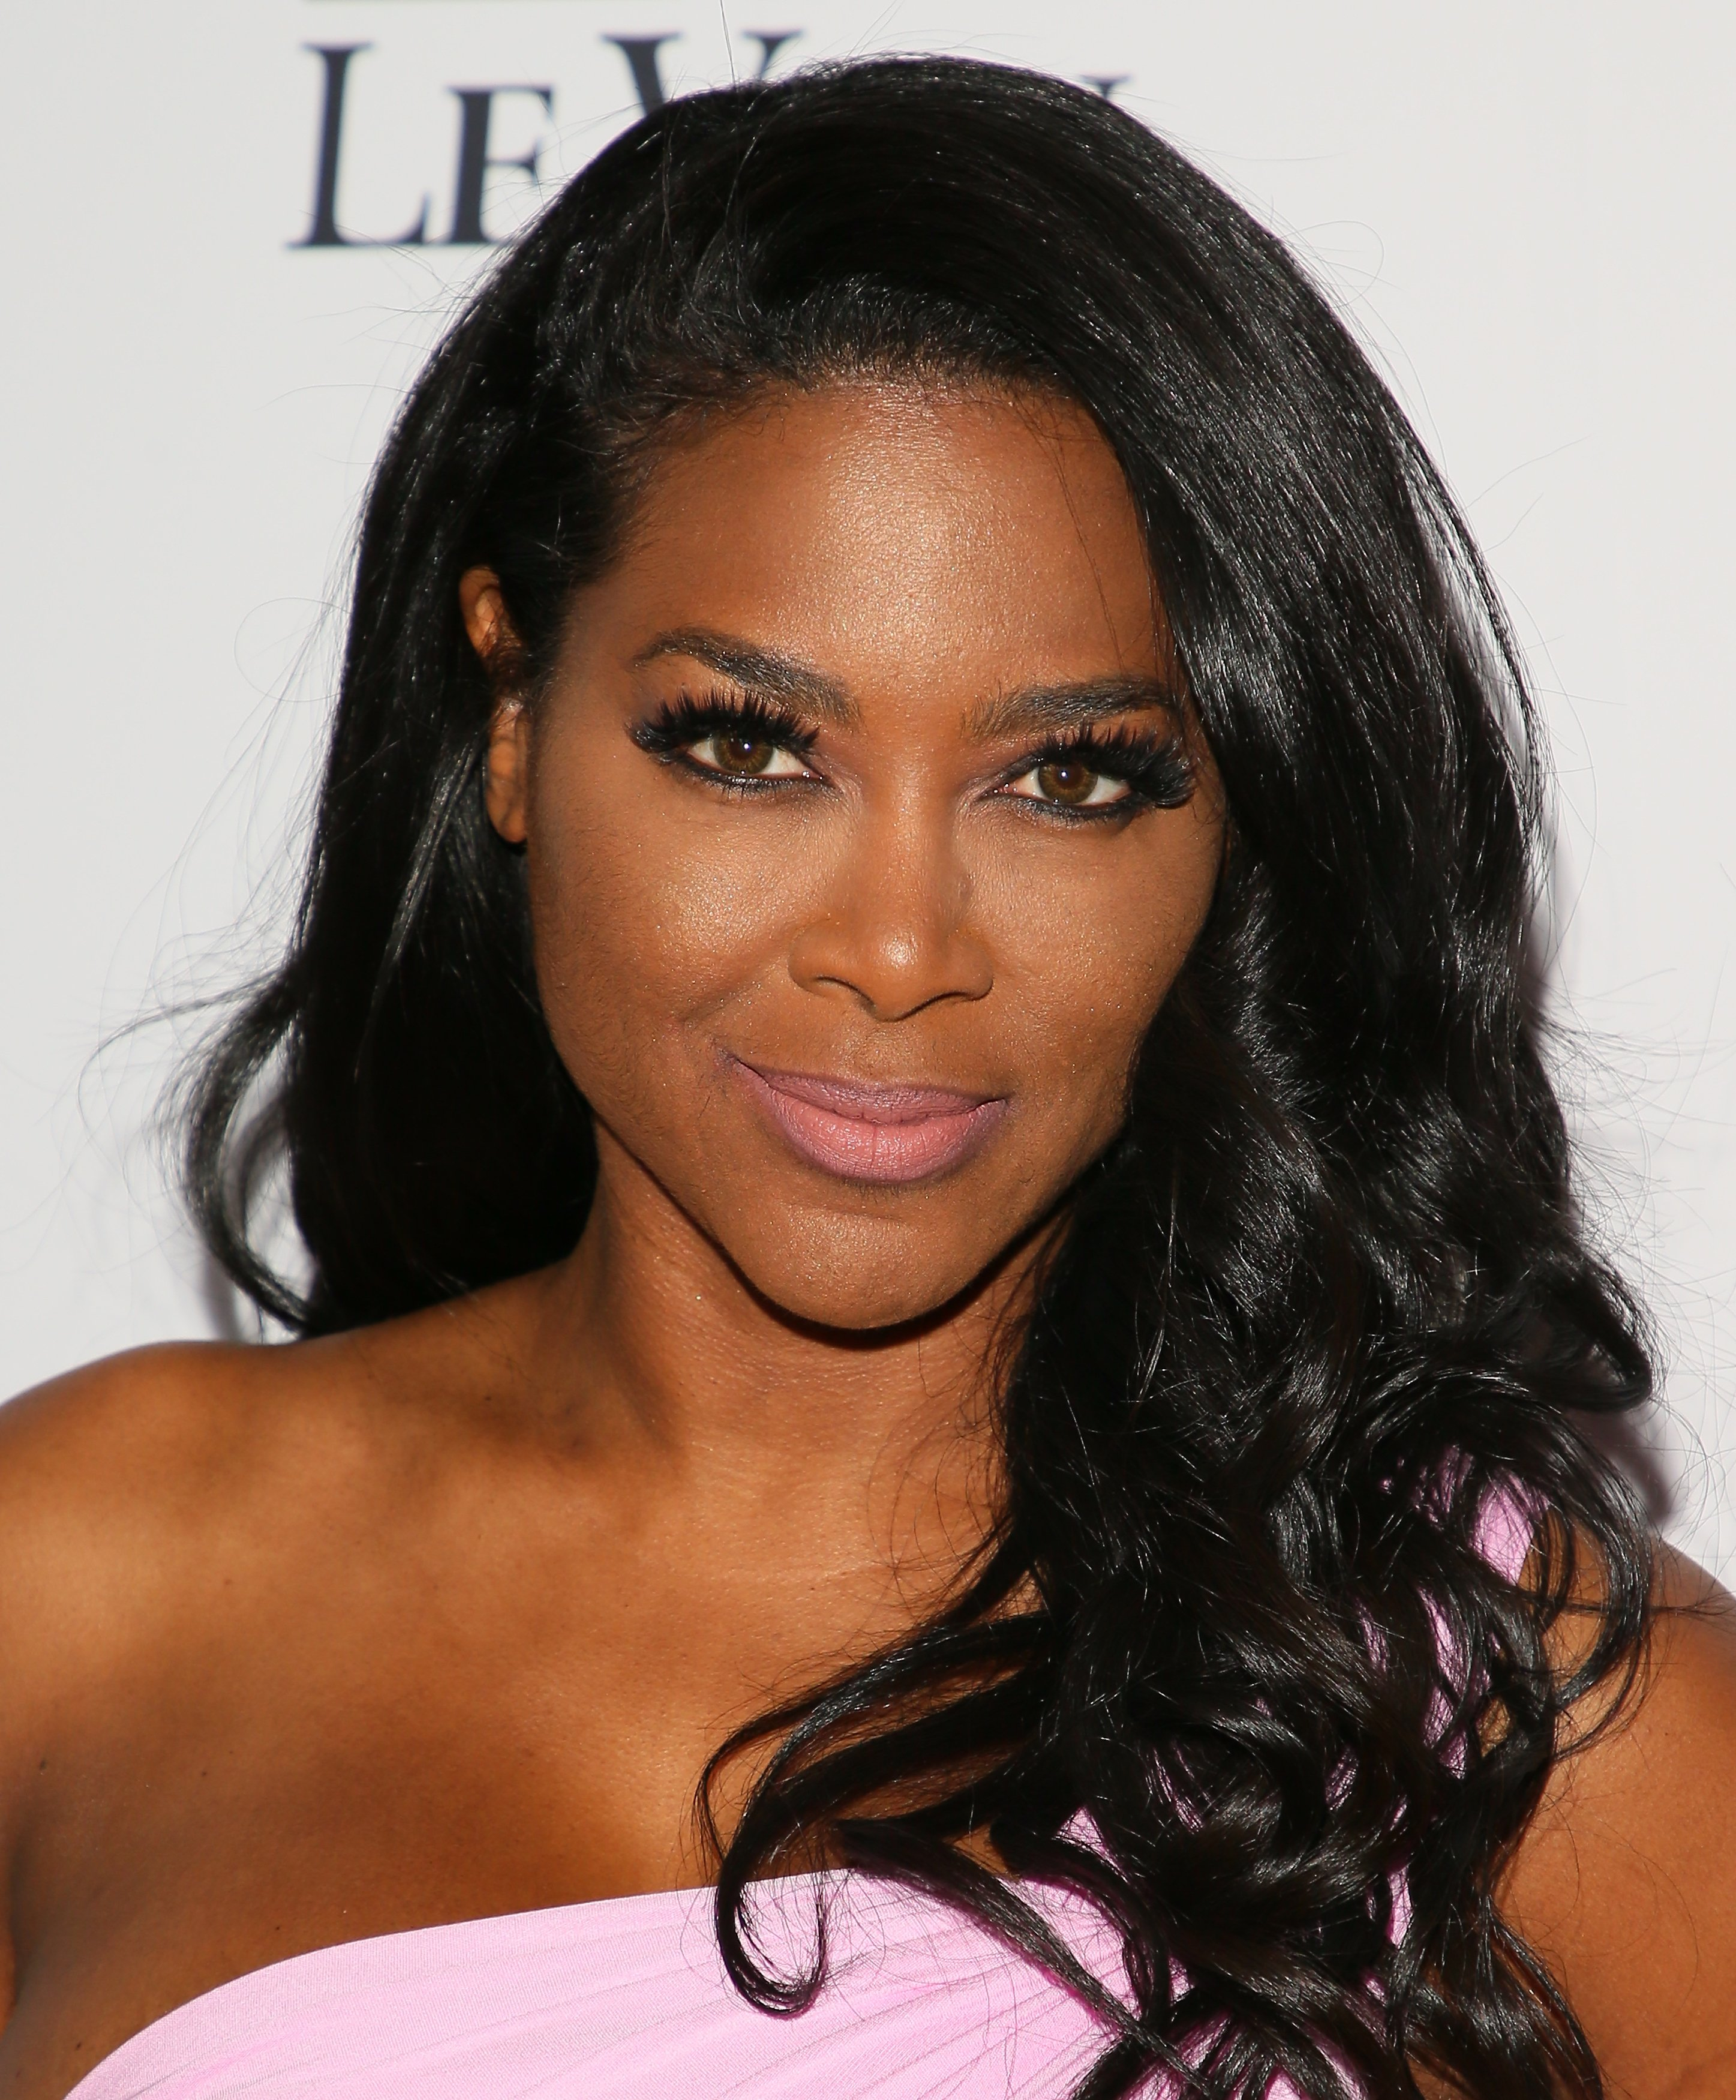 Kenya Moore attends the OK! Magazine's Annual Pre-Oscar Event on February 22, 2017, in Los Angeles, California.  Source: Getty Images